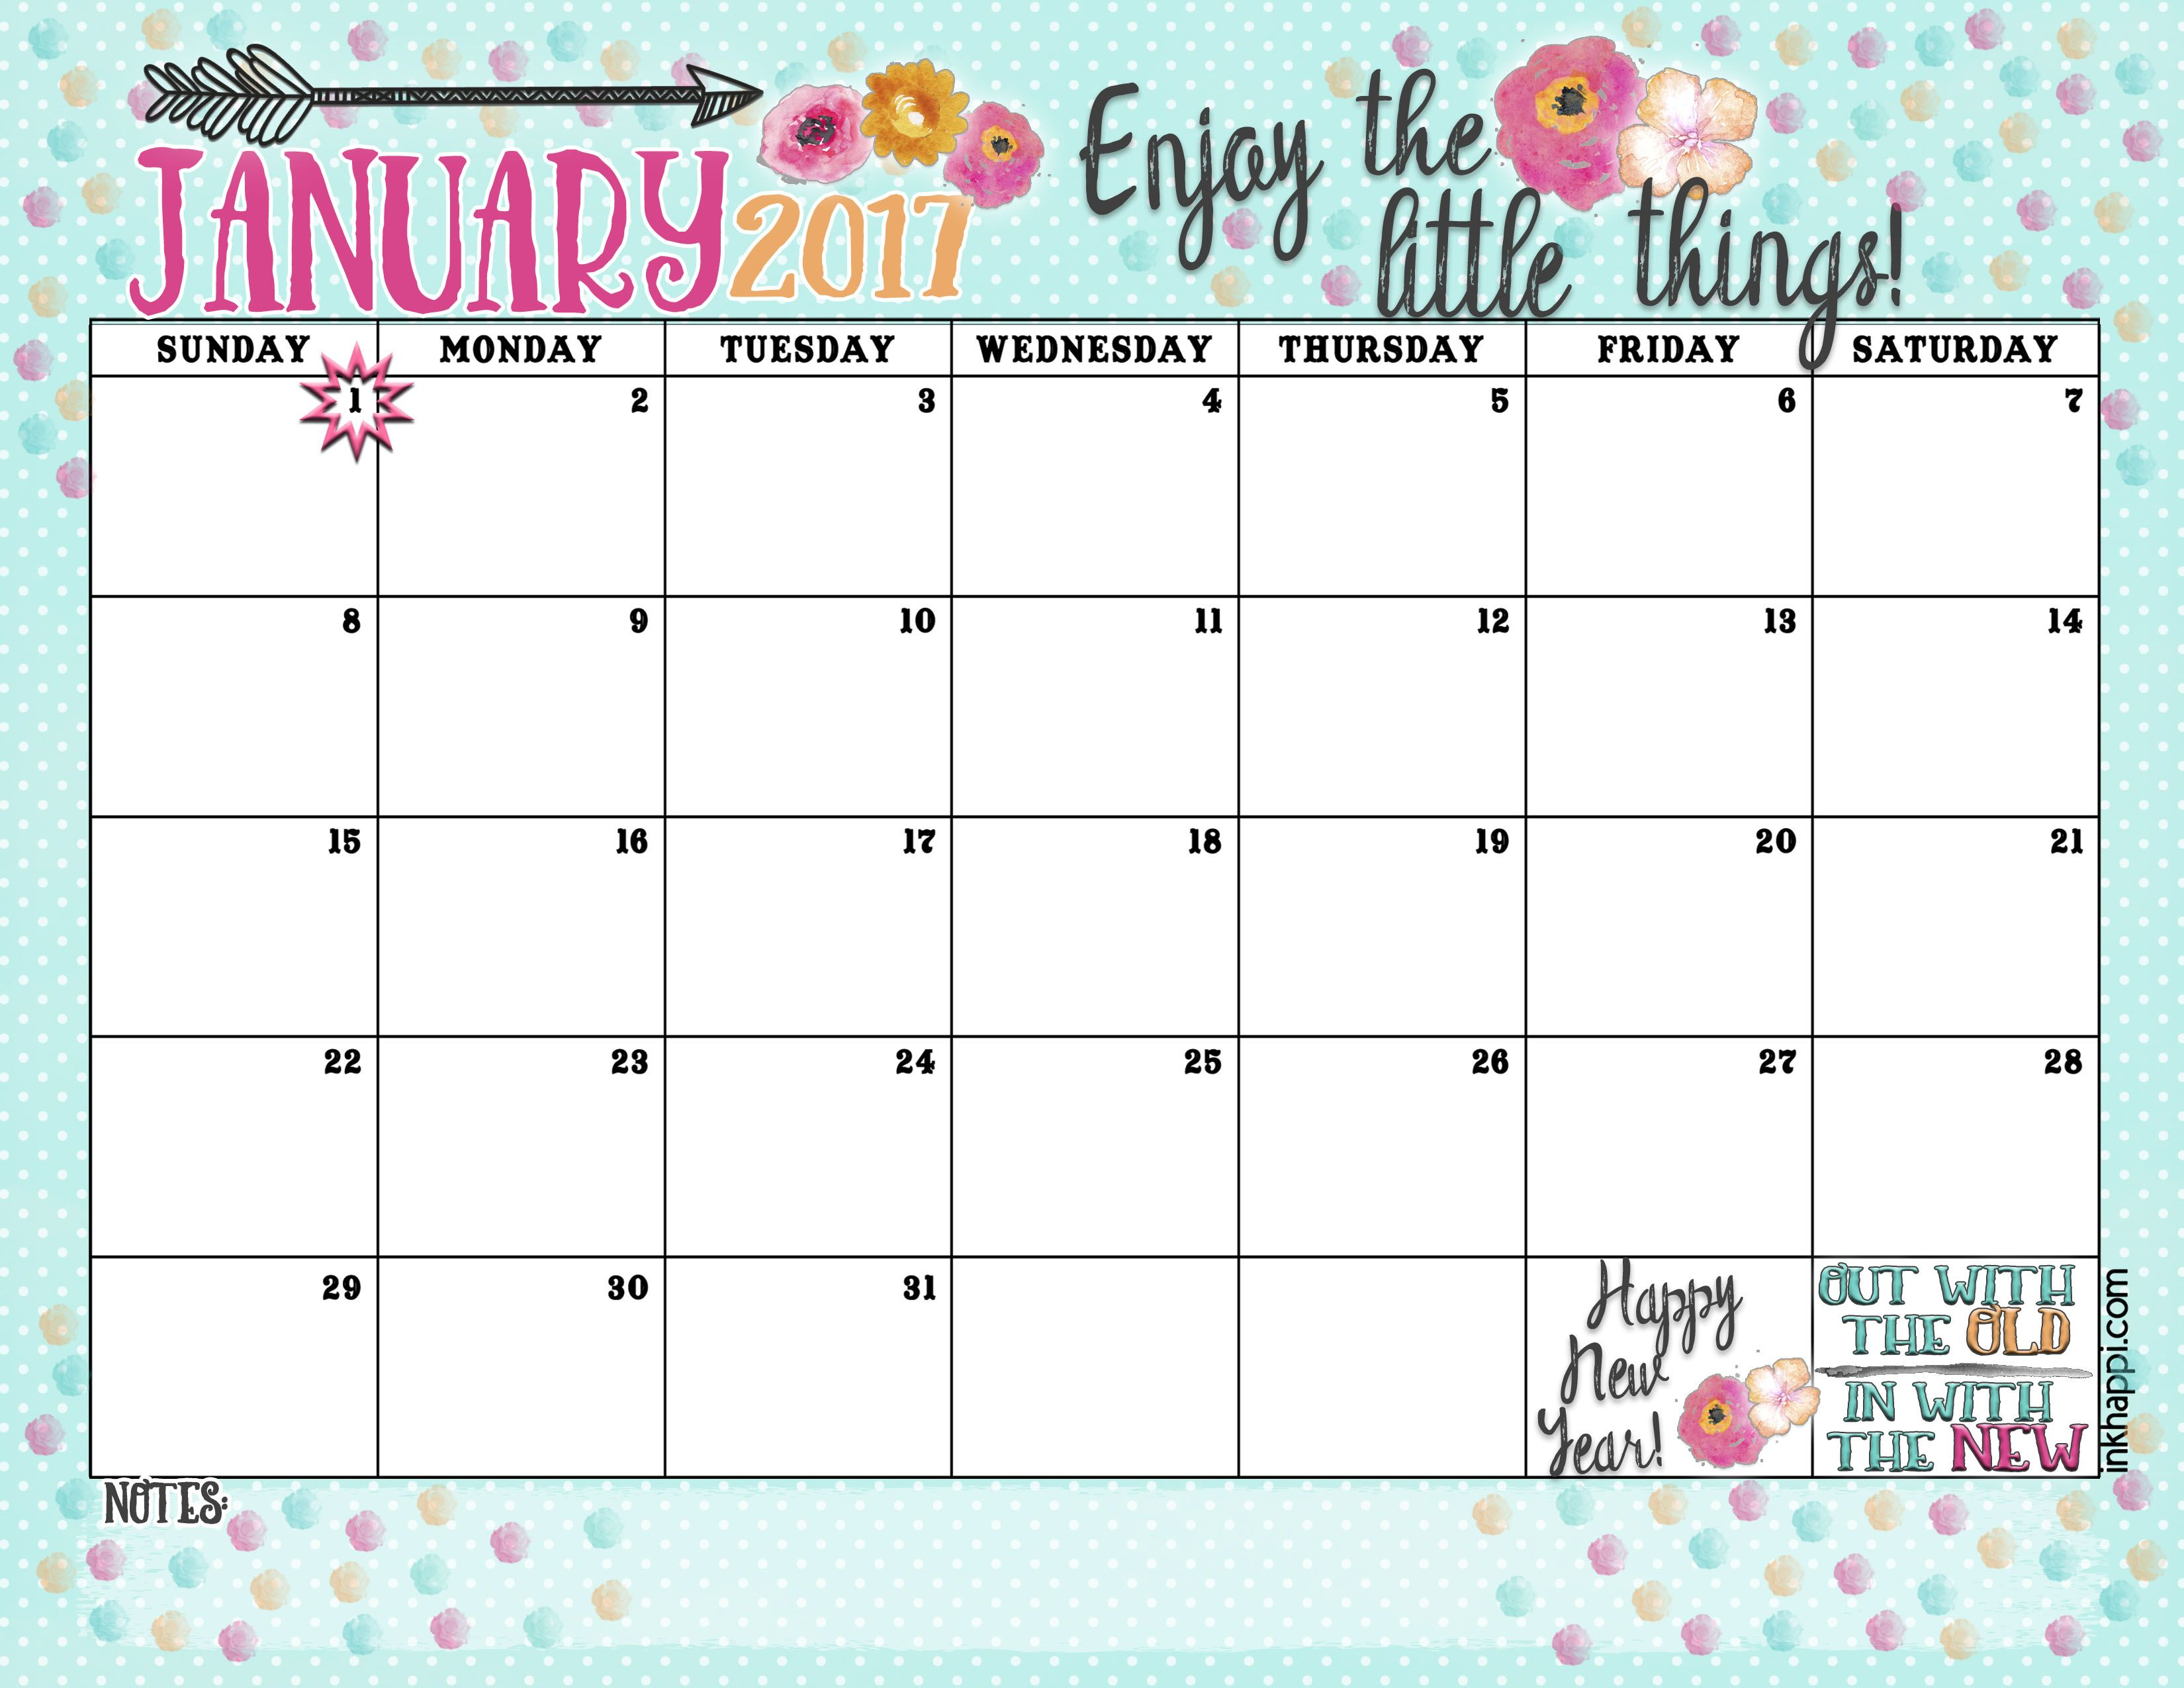 January Calendar And Print Enjoy The Little Things